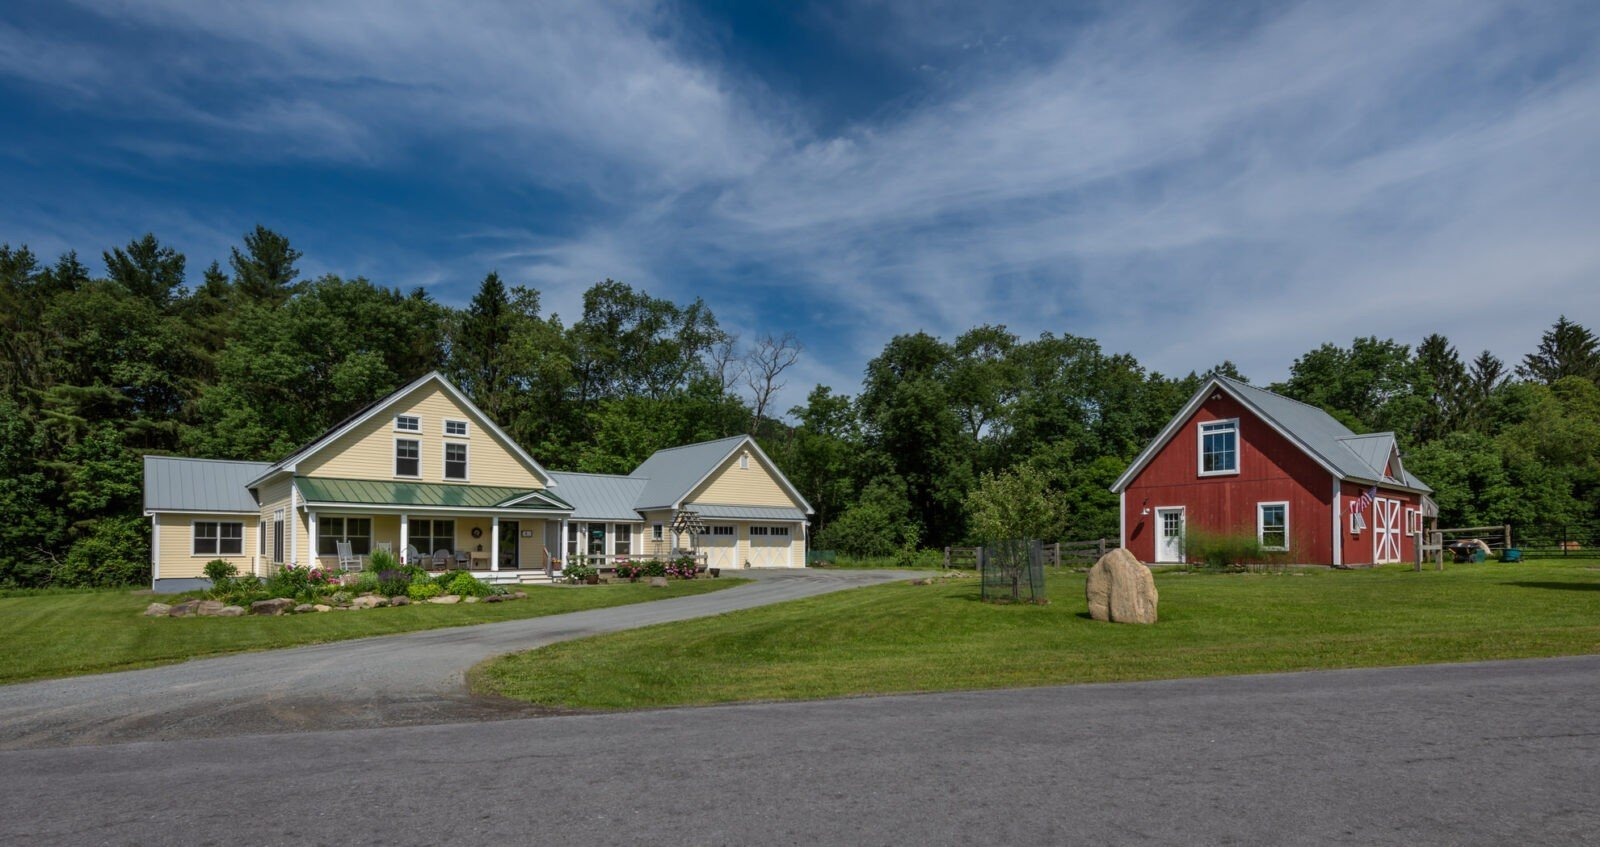 Cooperstown Farmhouse and Barn